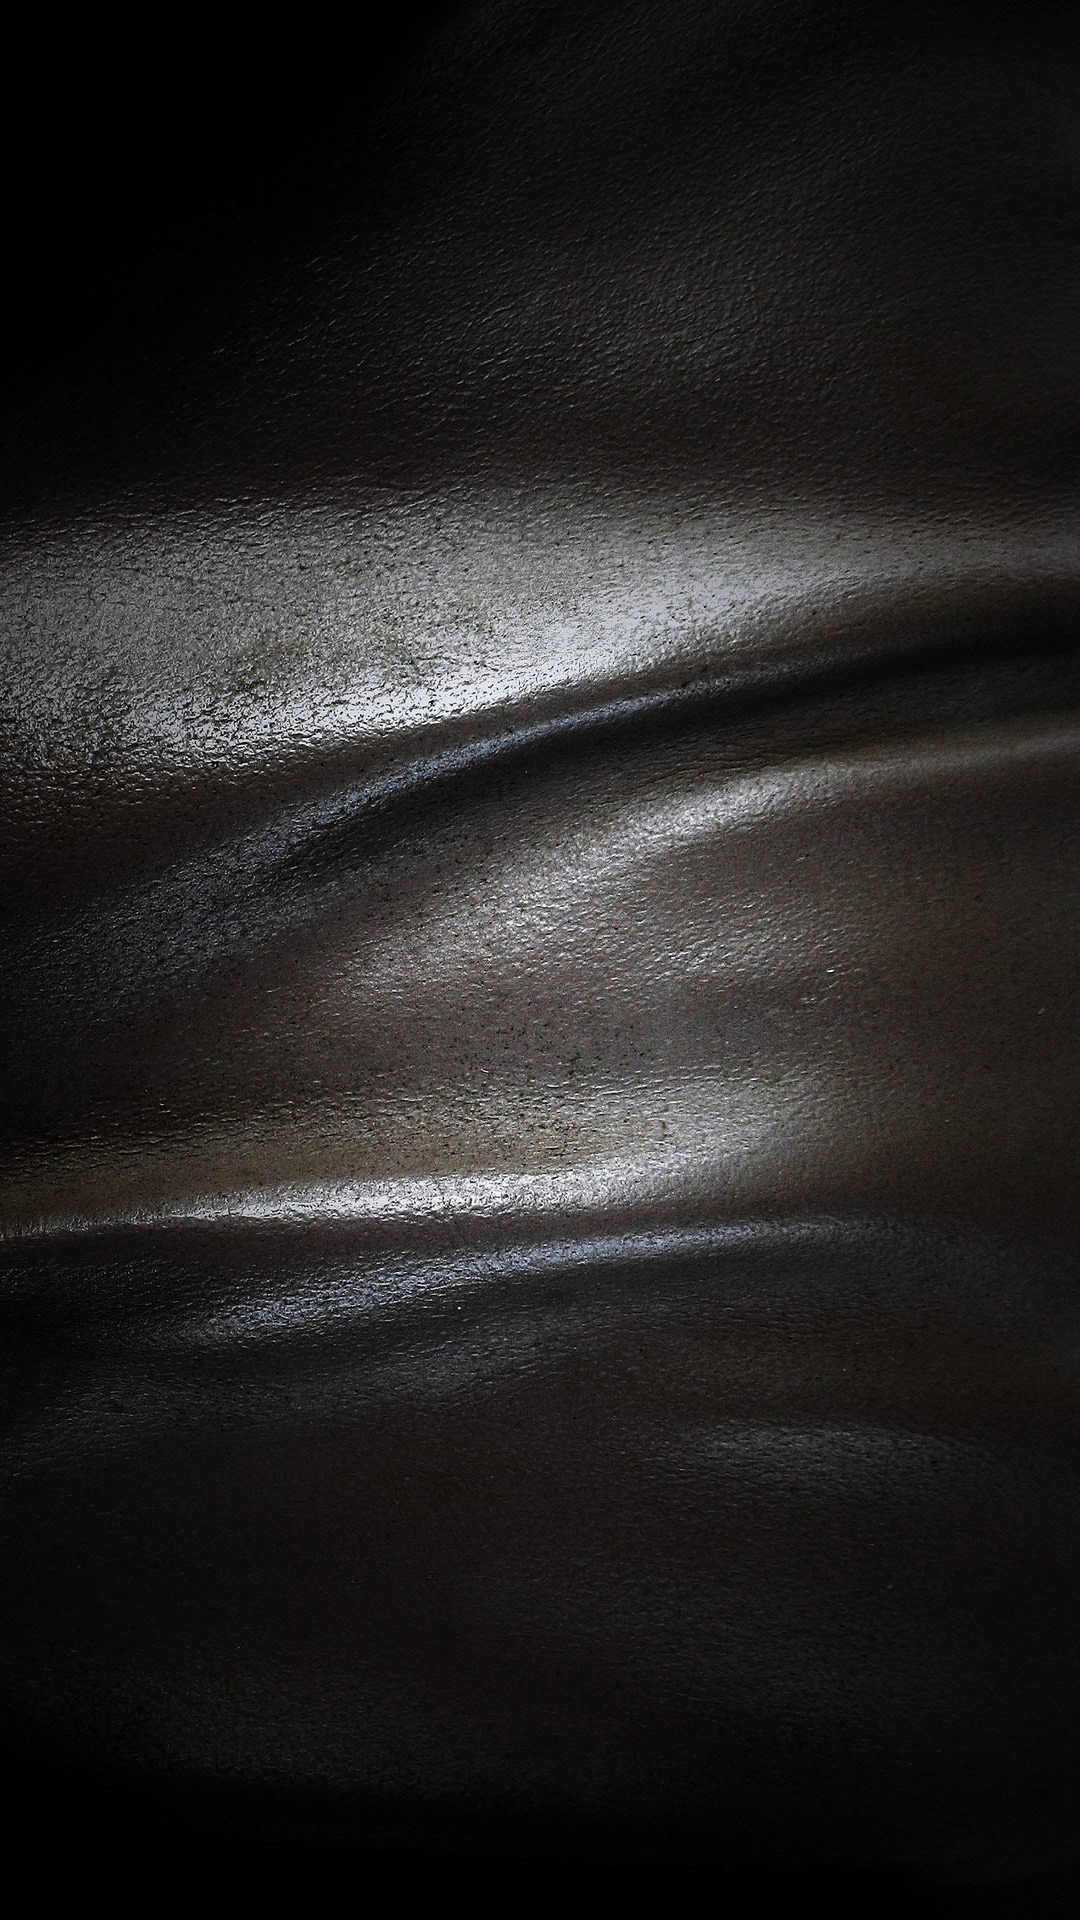 Black-Leather-Texture-HD-Free-Download-Wallpaper